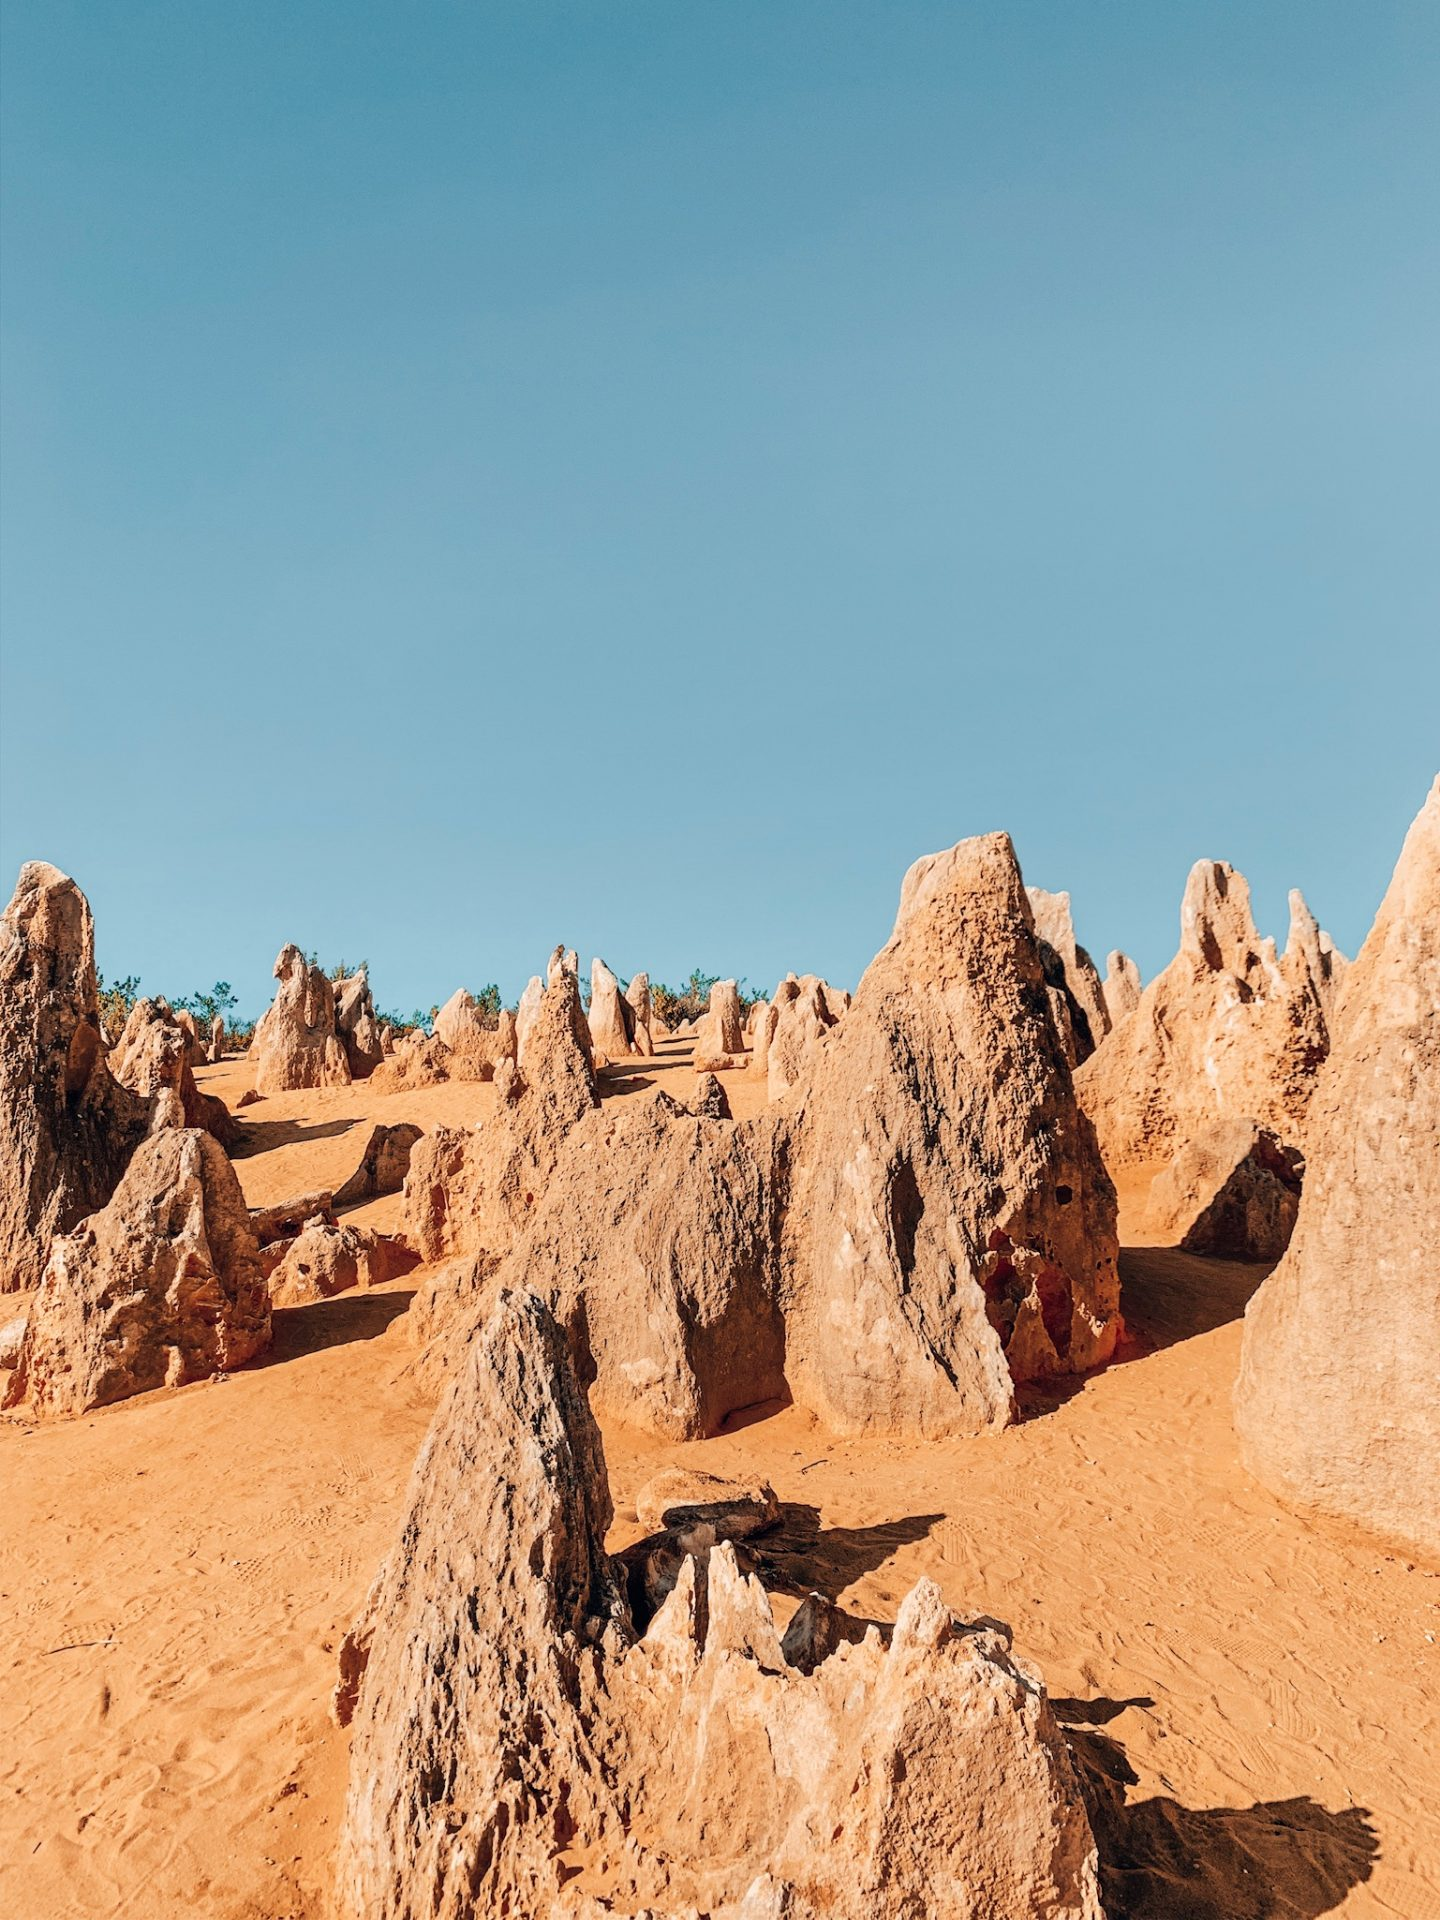 The Pinnacles Desert in Western Australia outside of Perth.